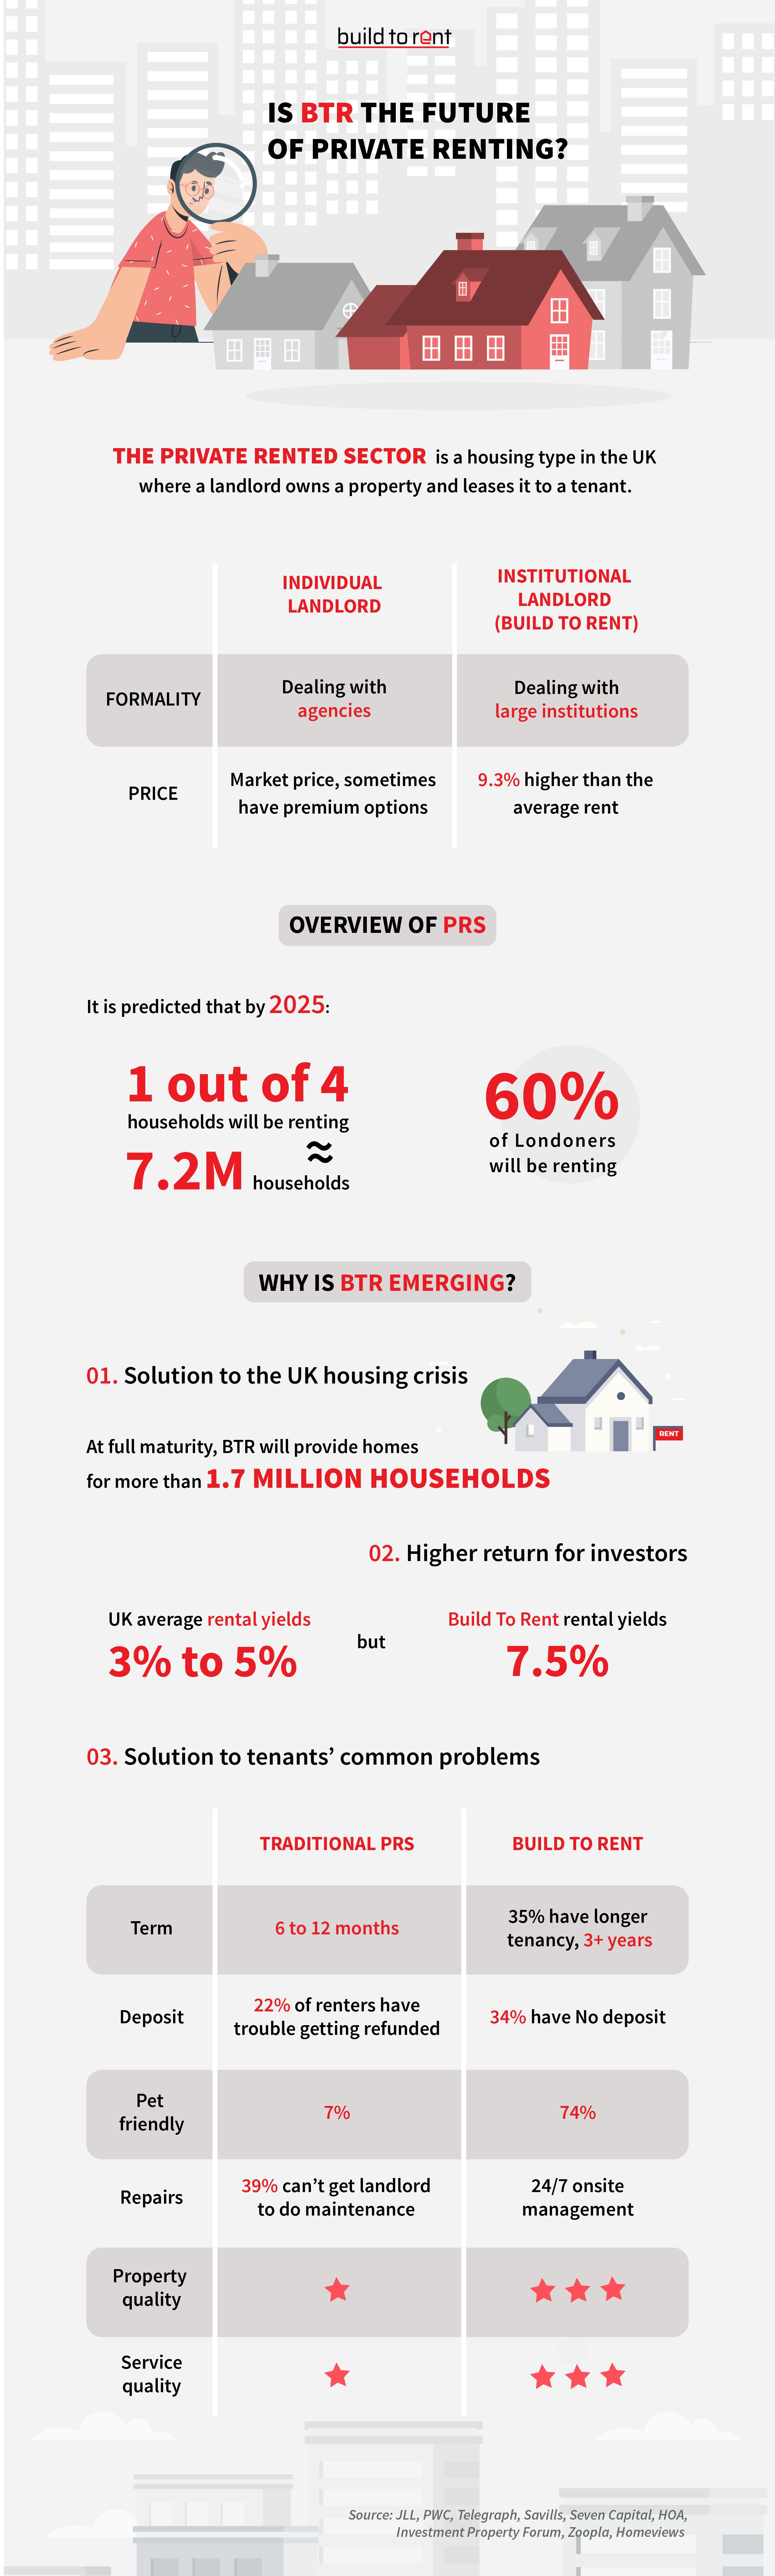 What is the Future of the Private Rented Sector?